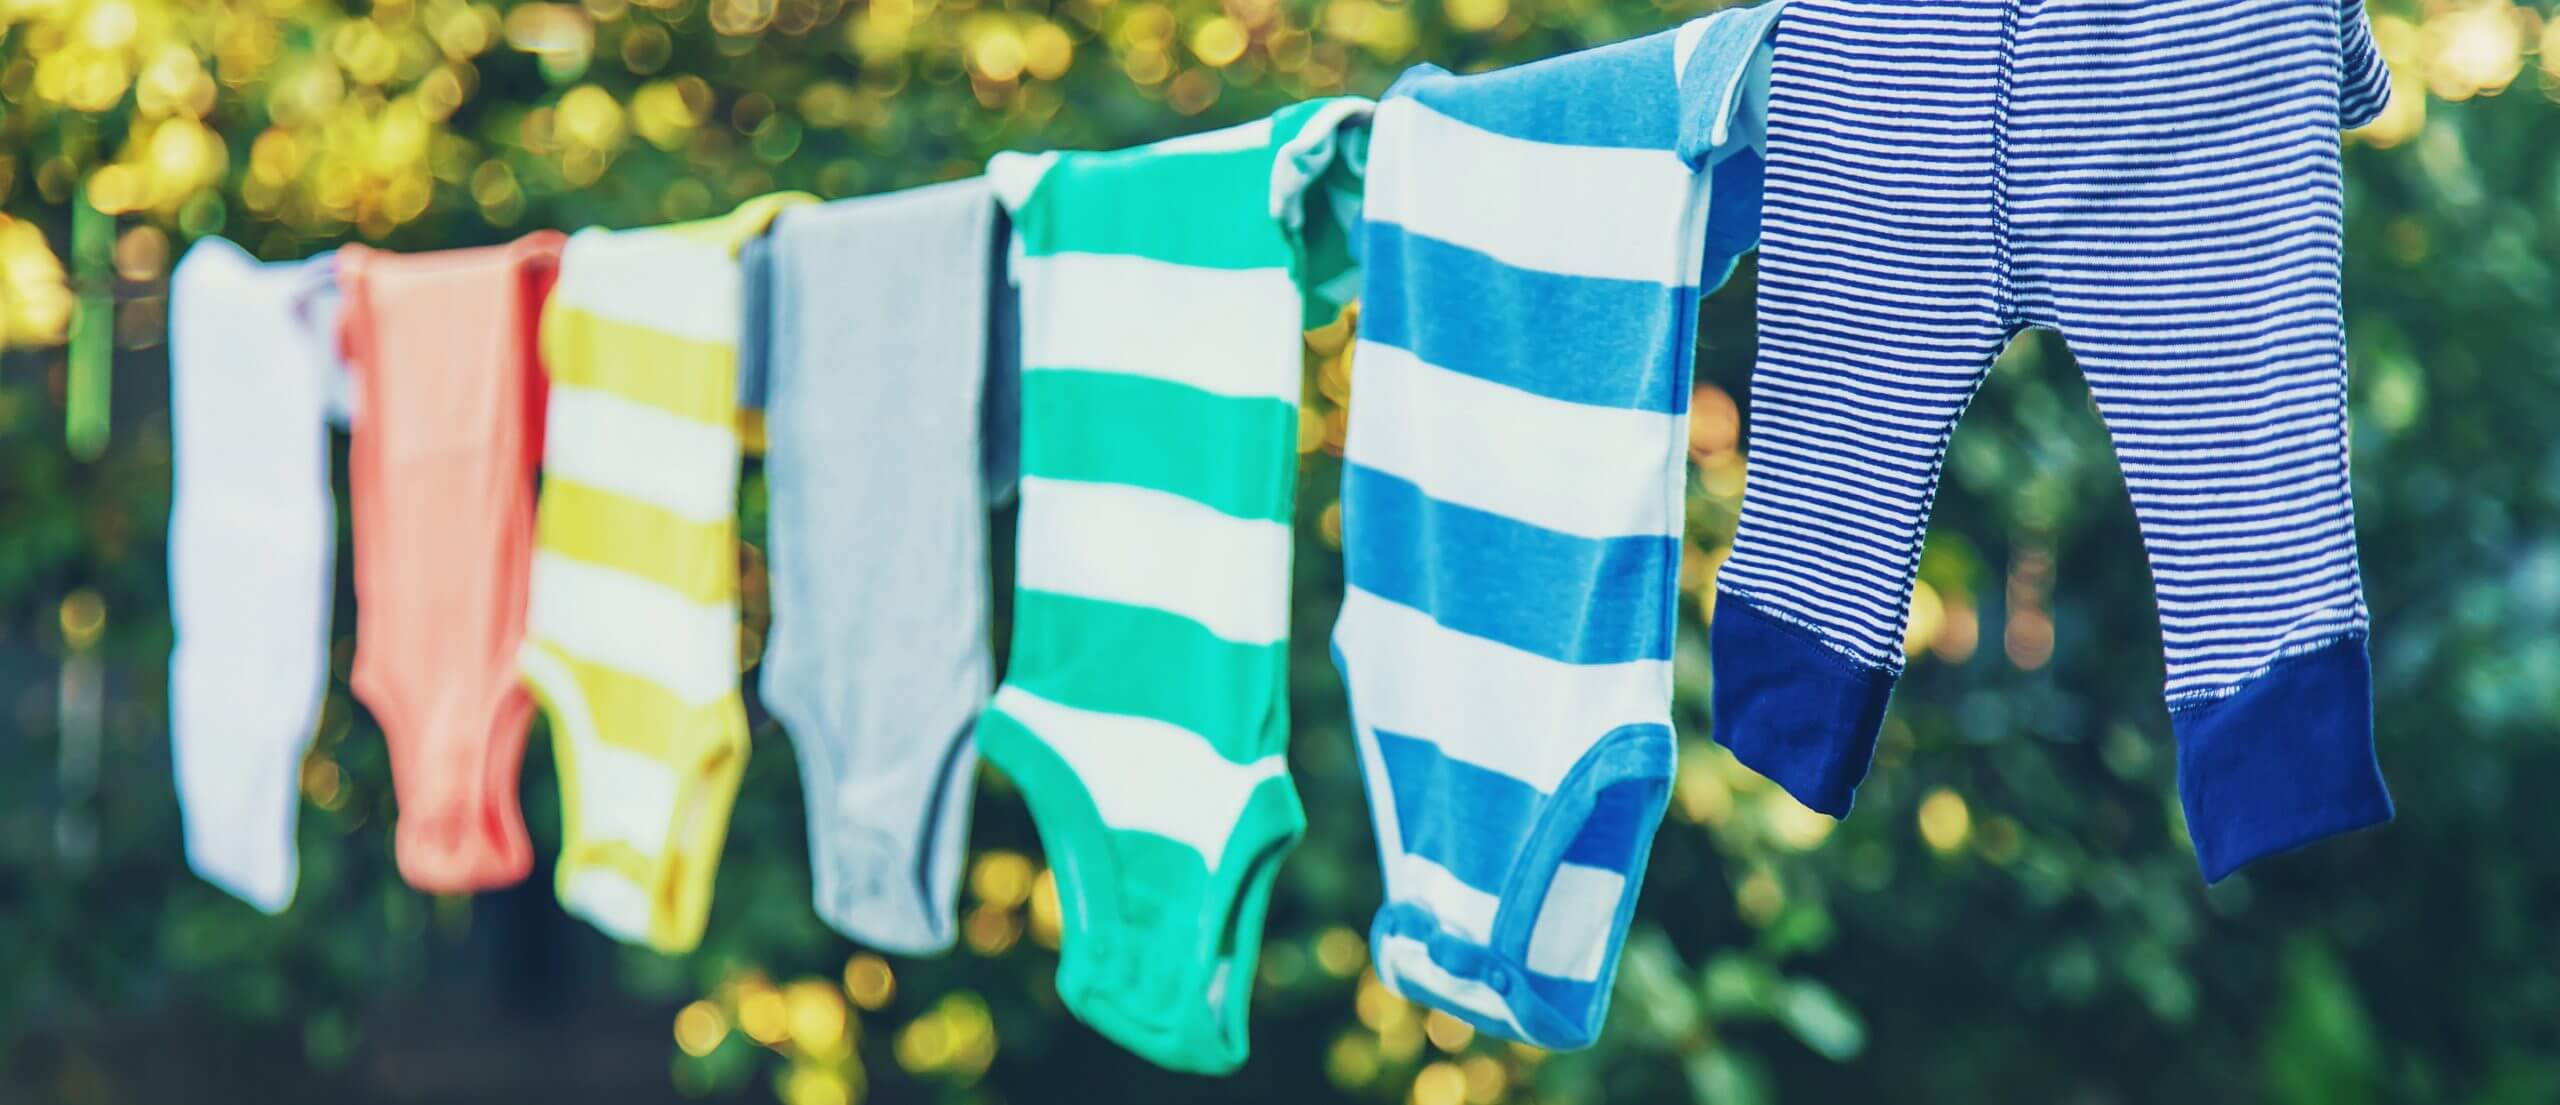 wash you clothes and air dry them so that they last longer